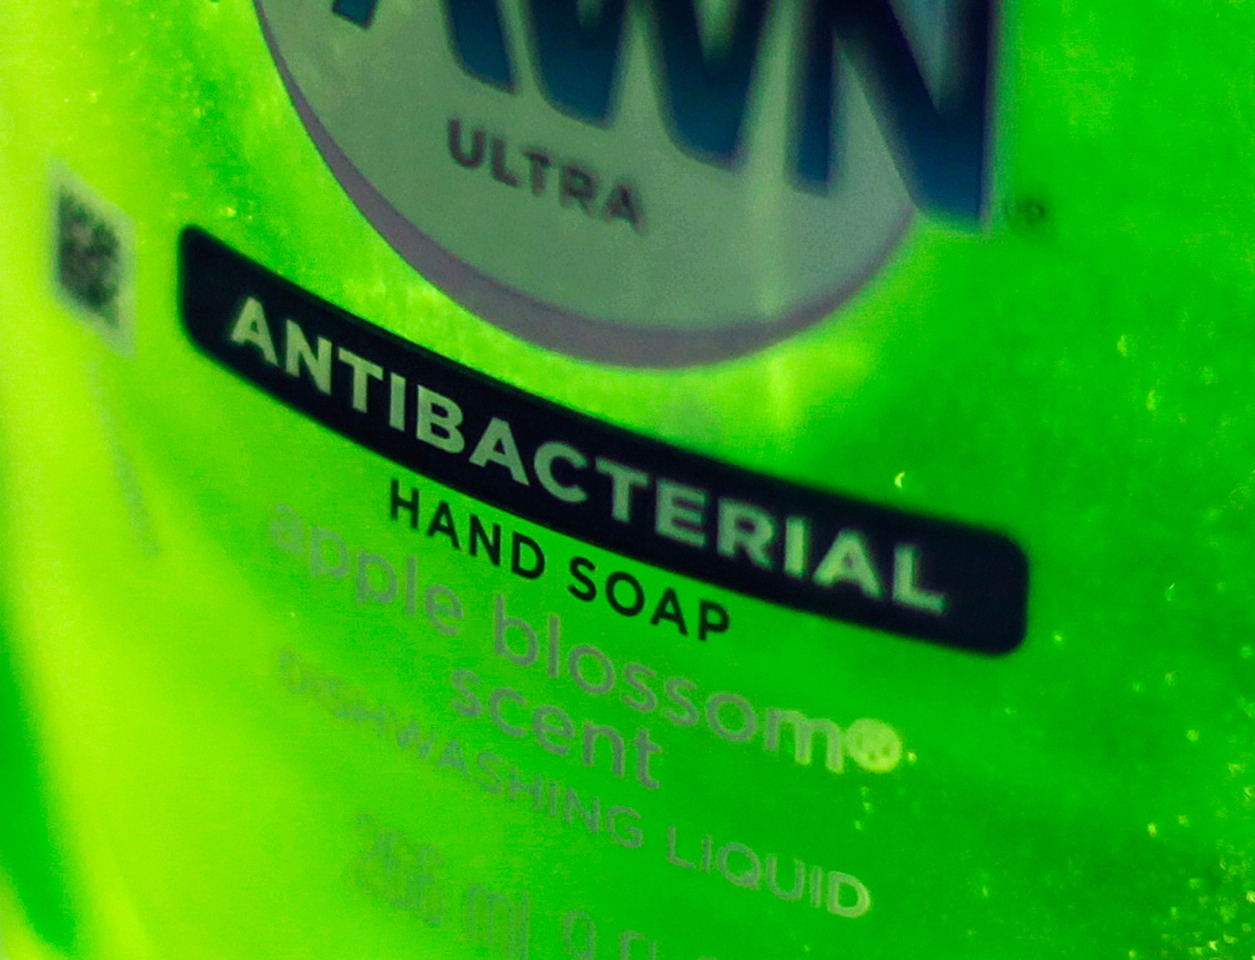 As the FDA recently noted, antibacterial products are no more effective than soap and water, and could be dangerous.